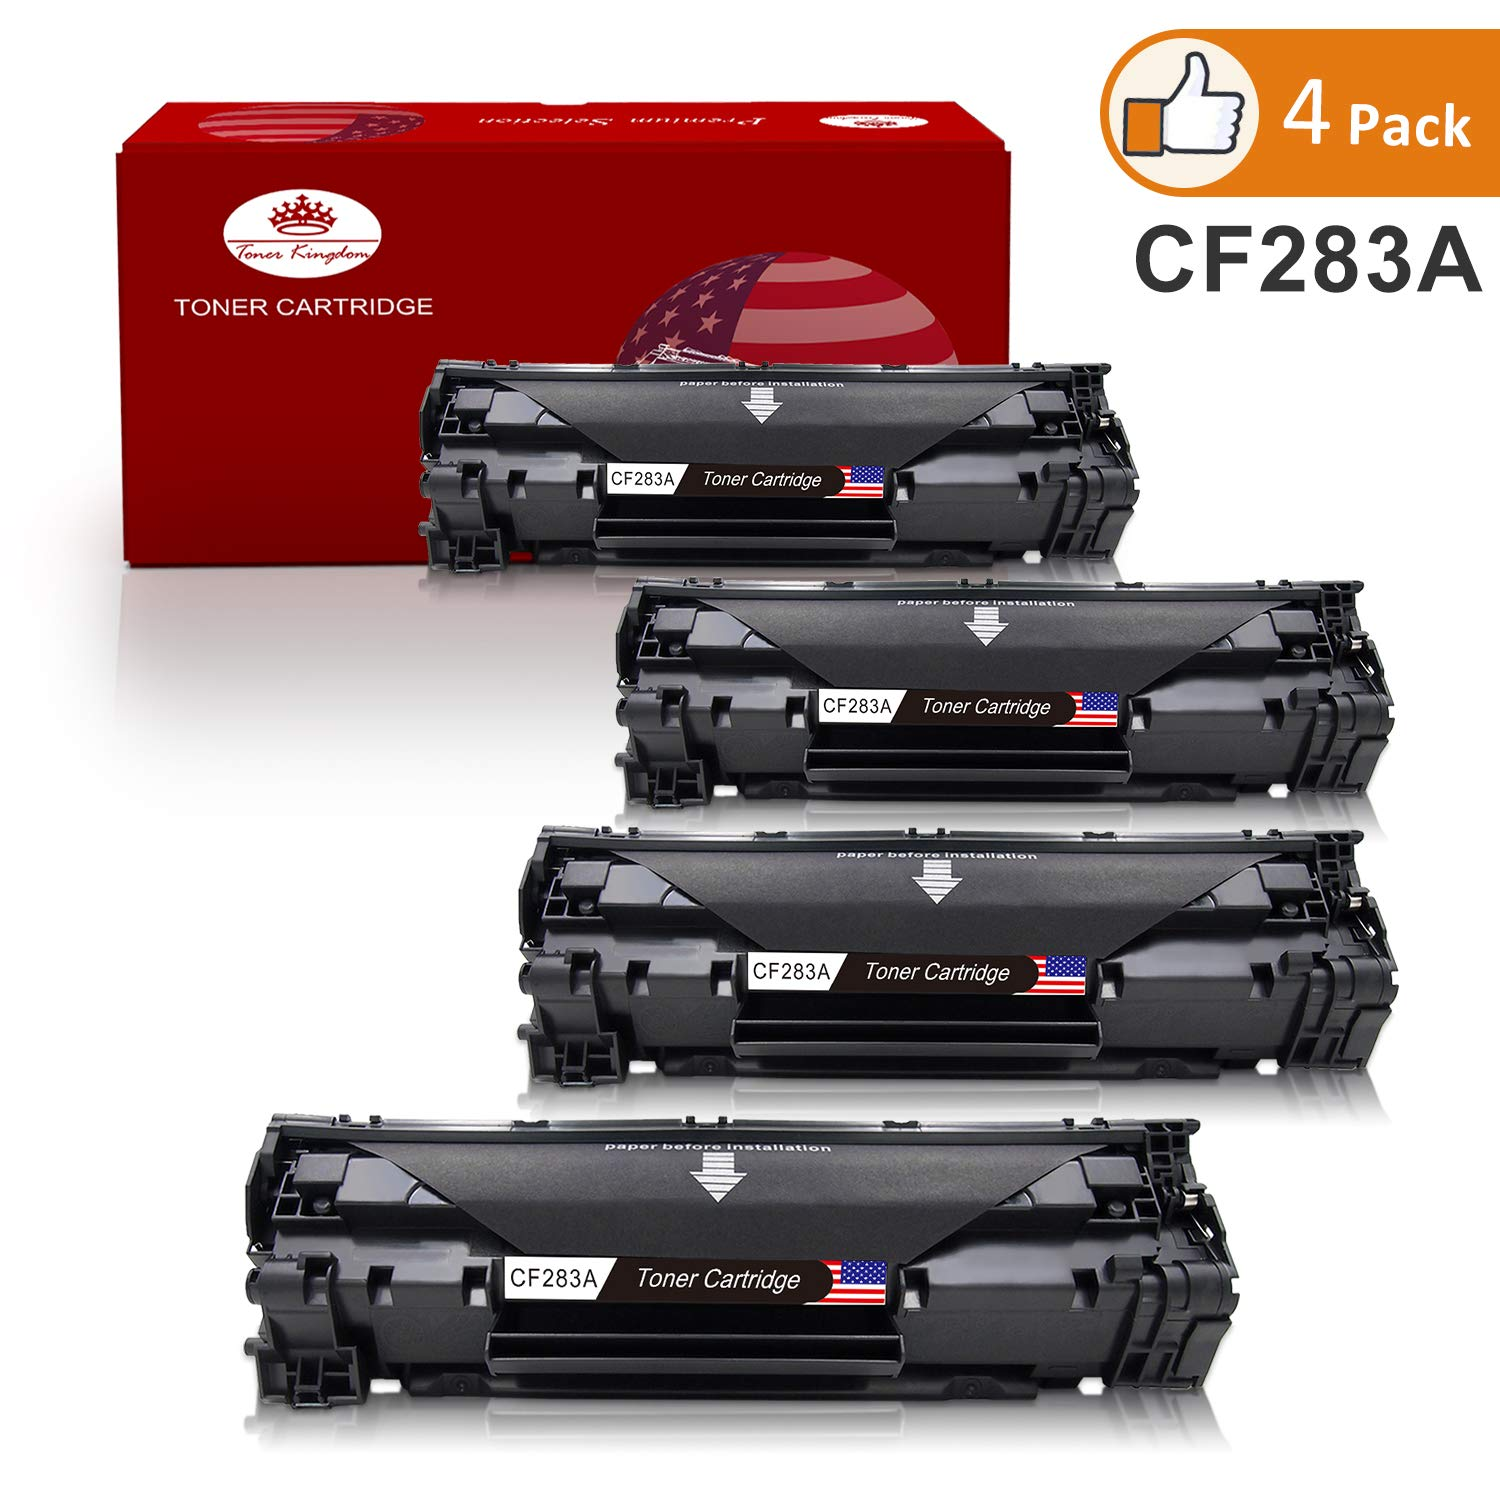 83a Cf283a Toner Cartridge Black 4pack Kingdom Hp Compatible Replacement For Used In Laserjet Pro Mfp M127fn M125a M201n M201dw M225dn